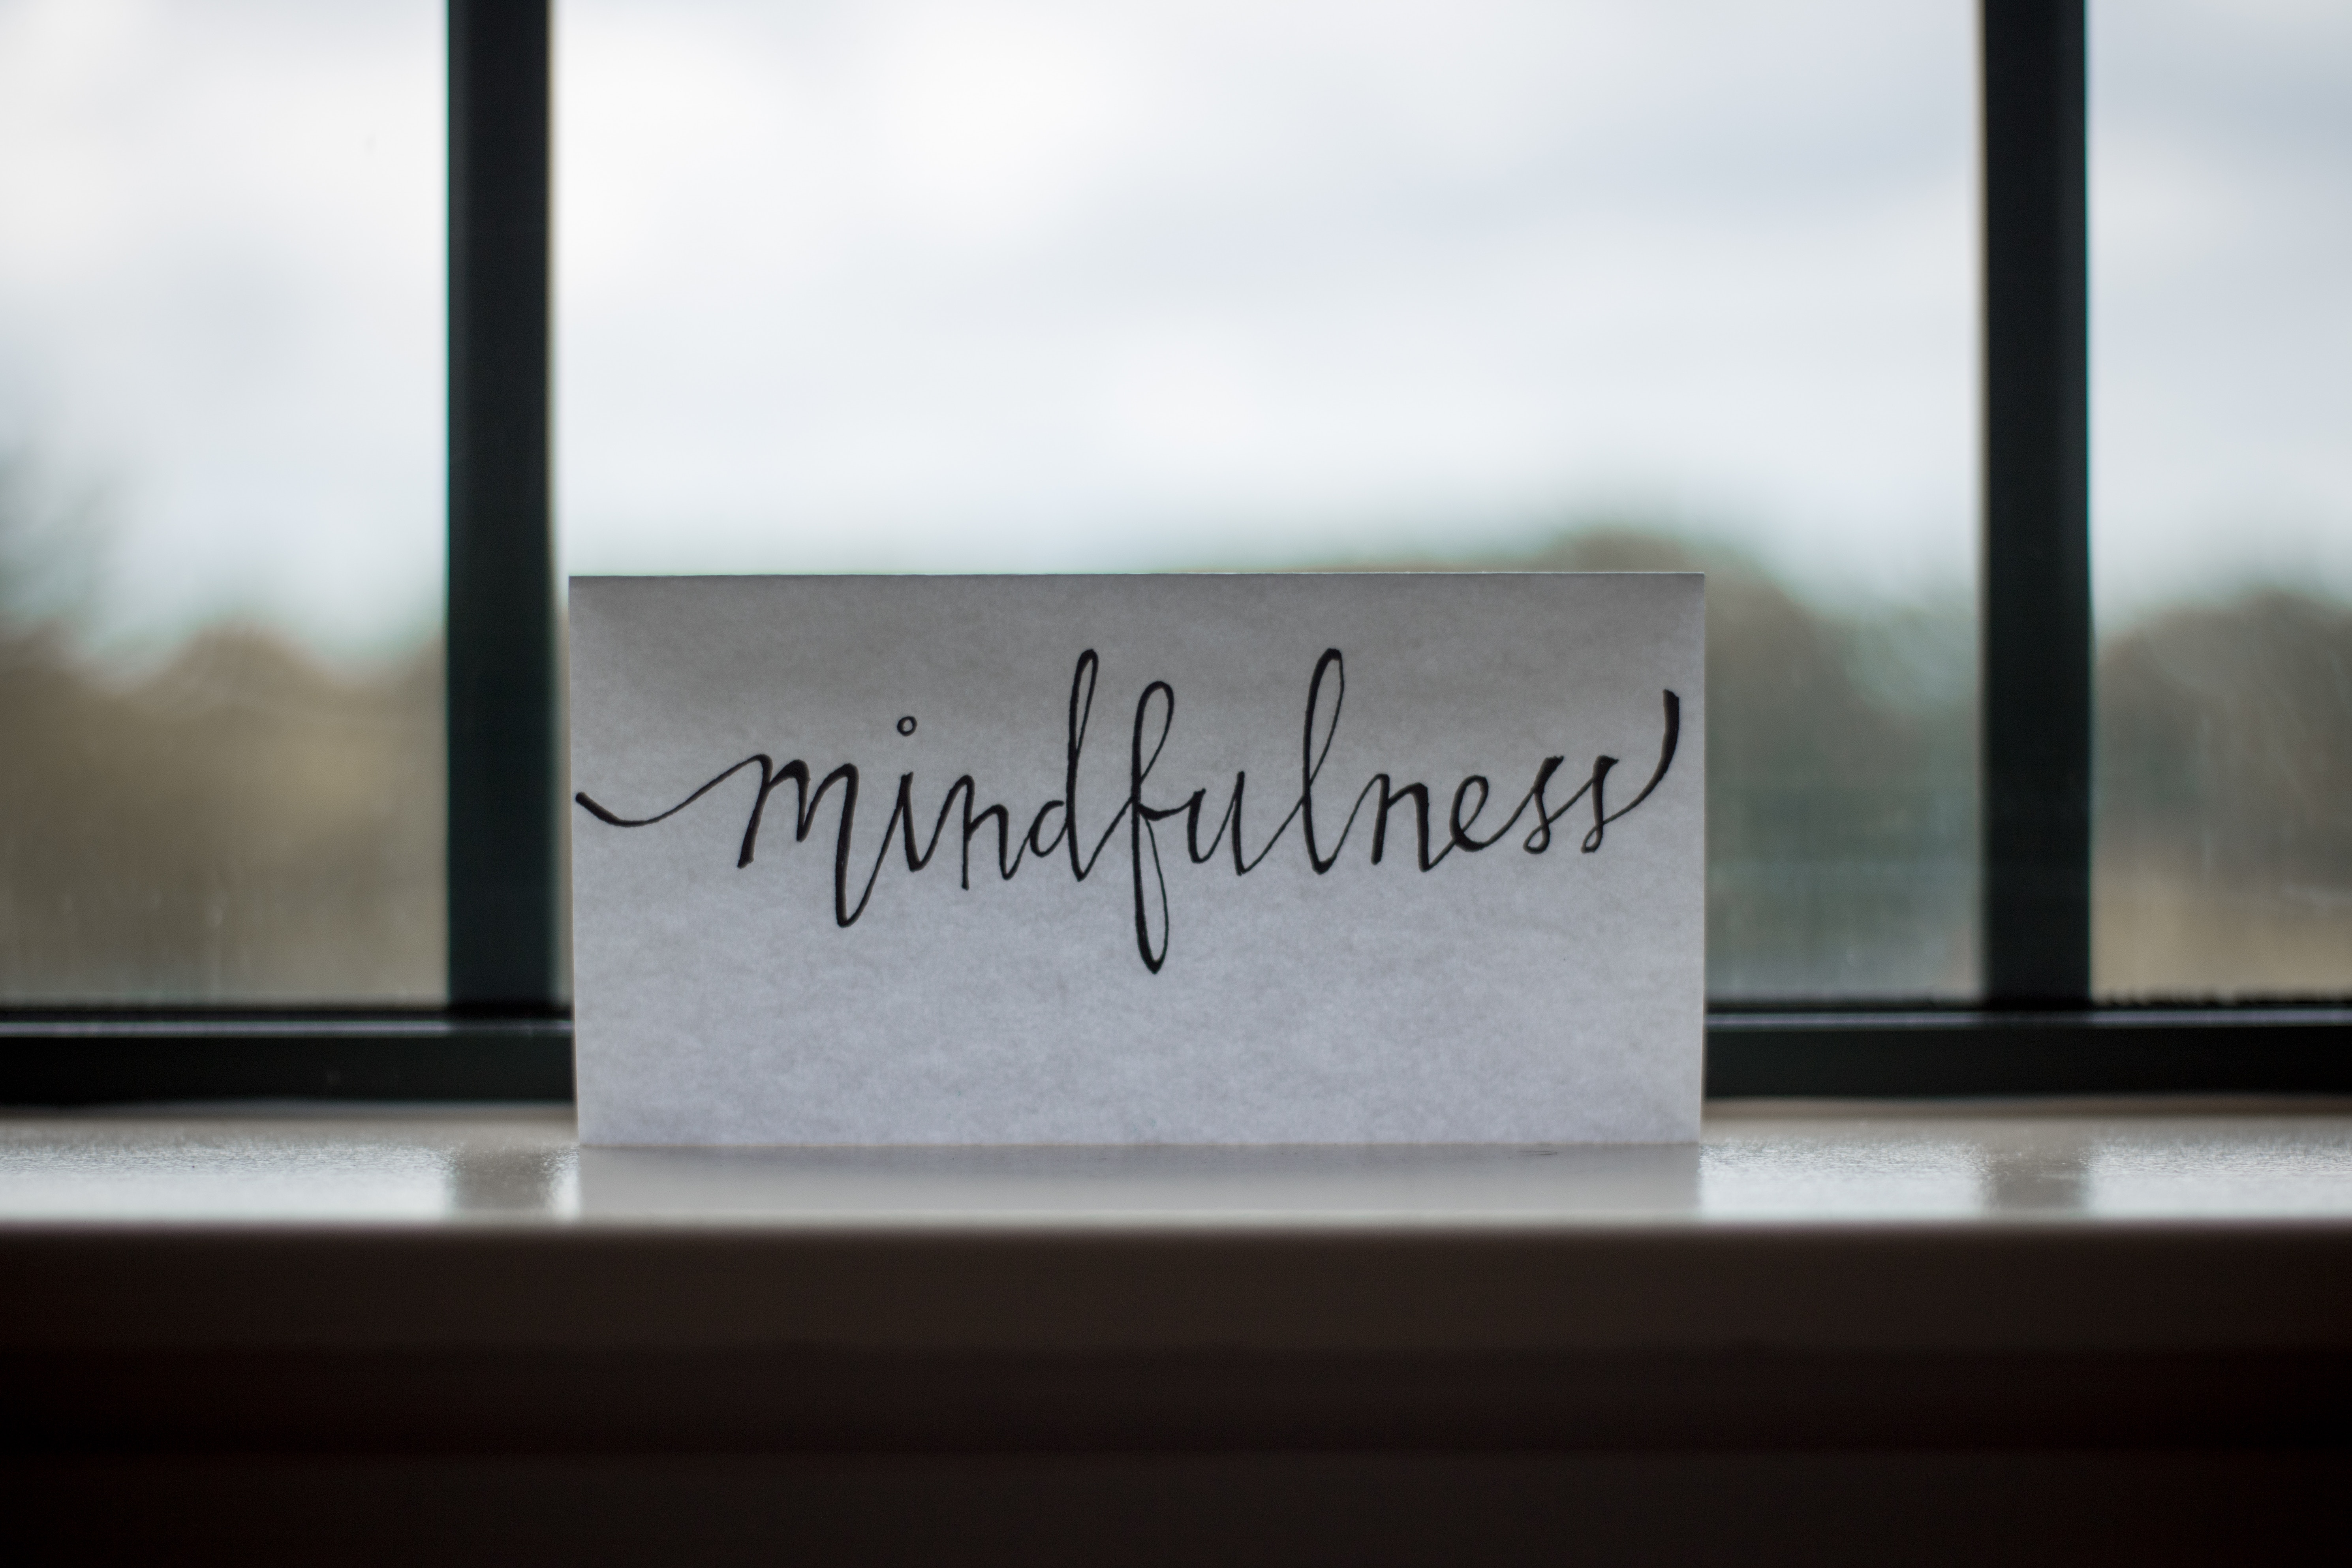 being mindful and mindfulness